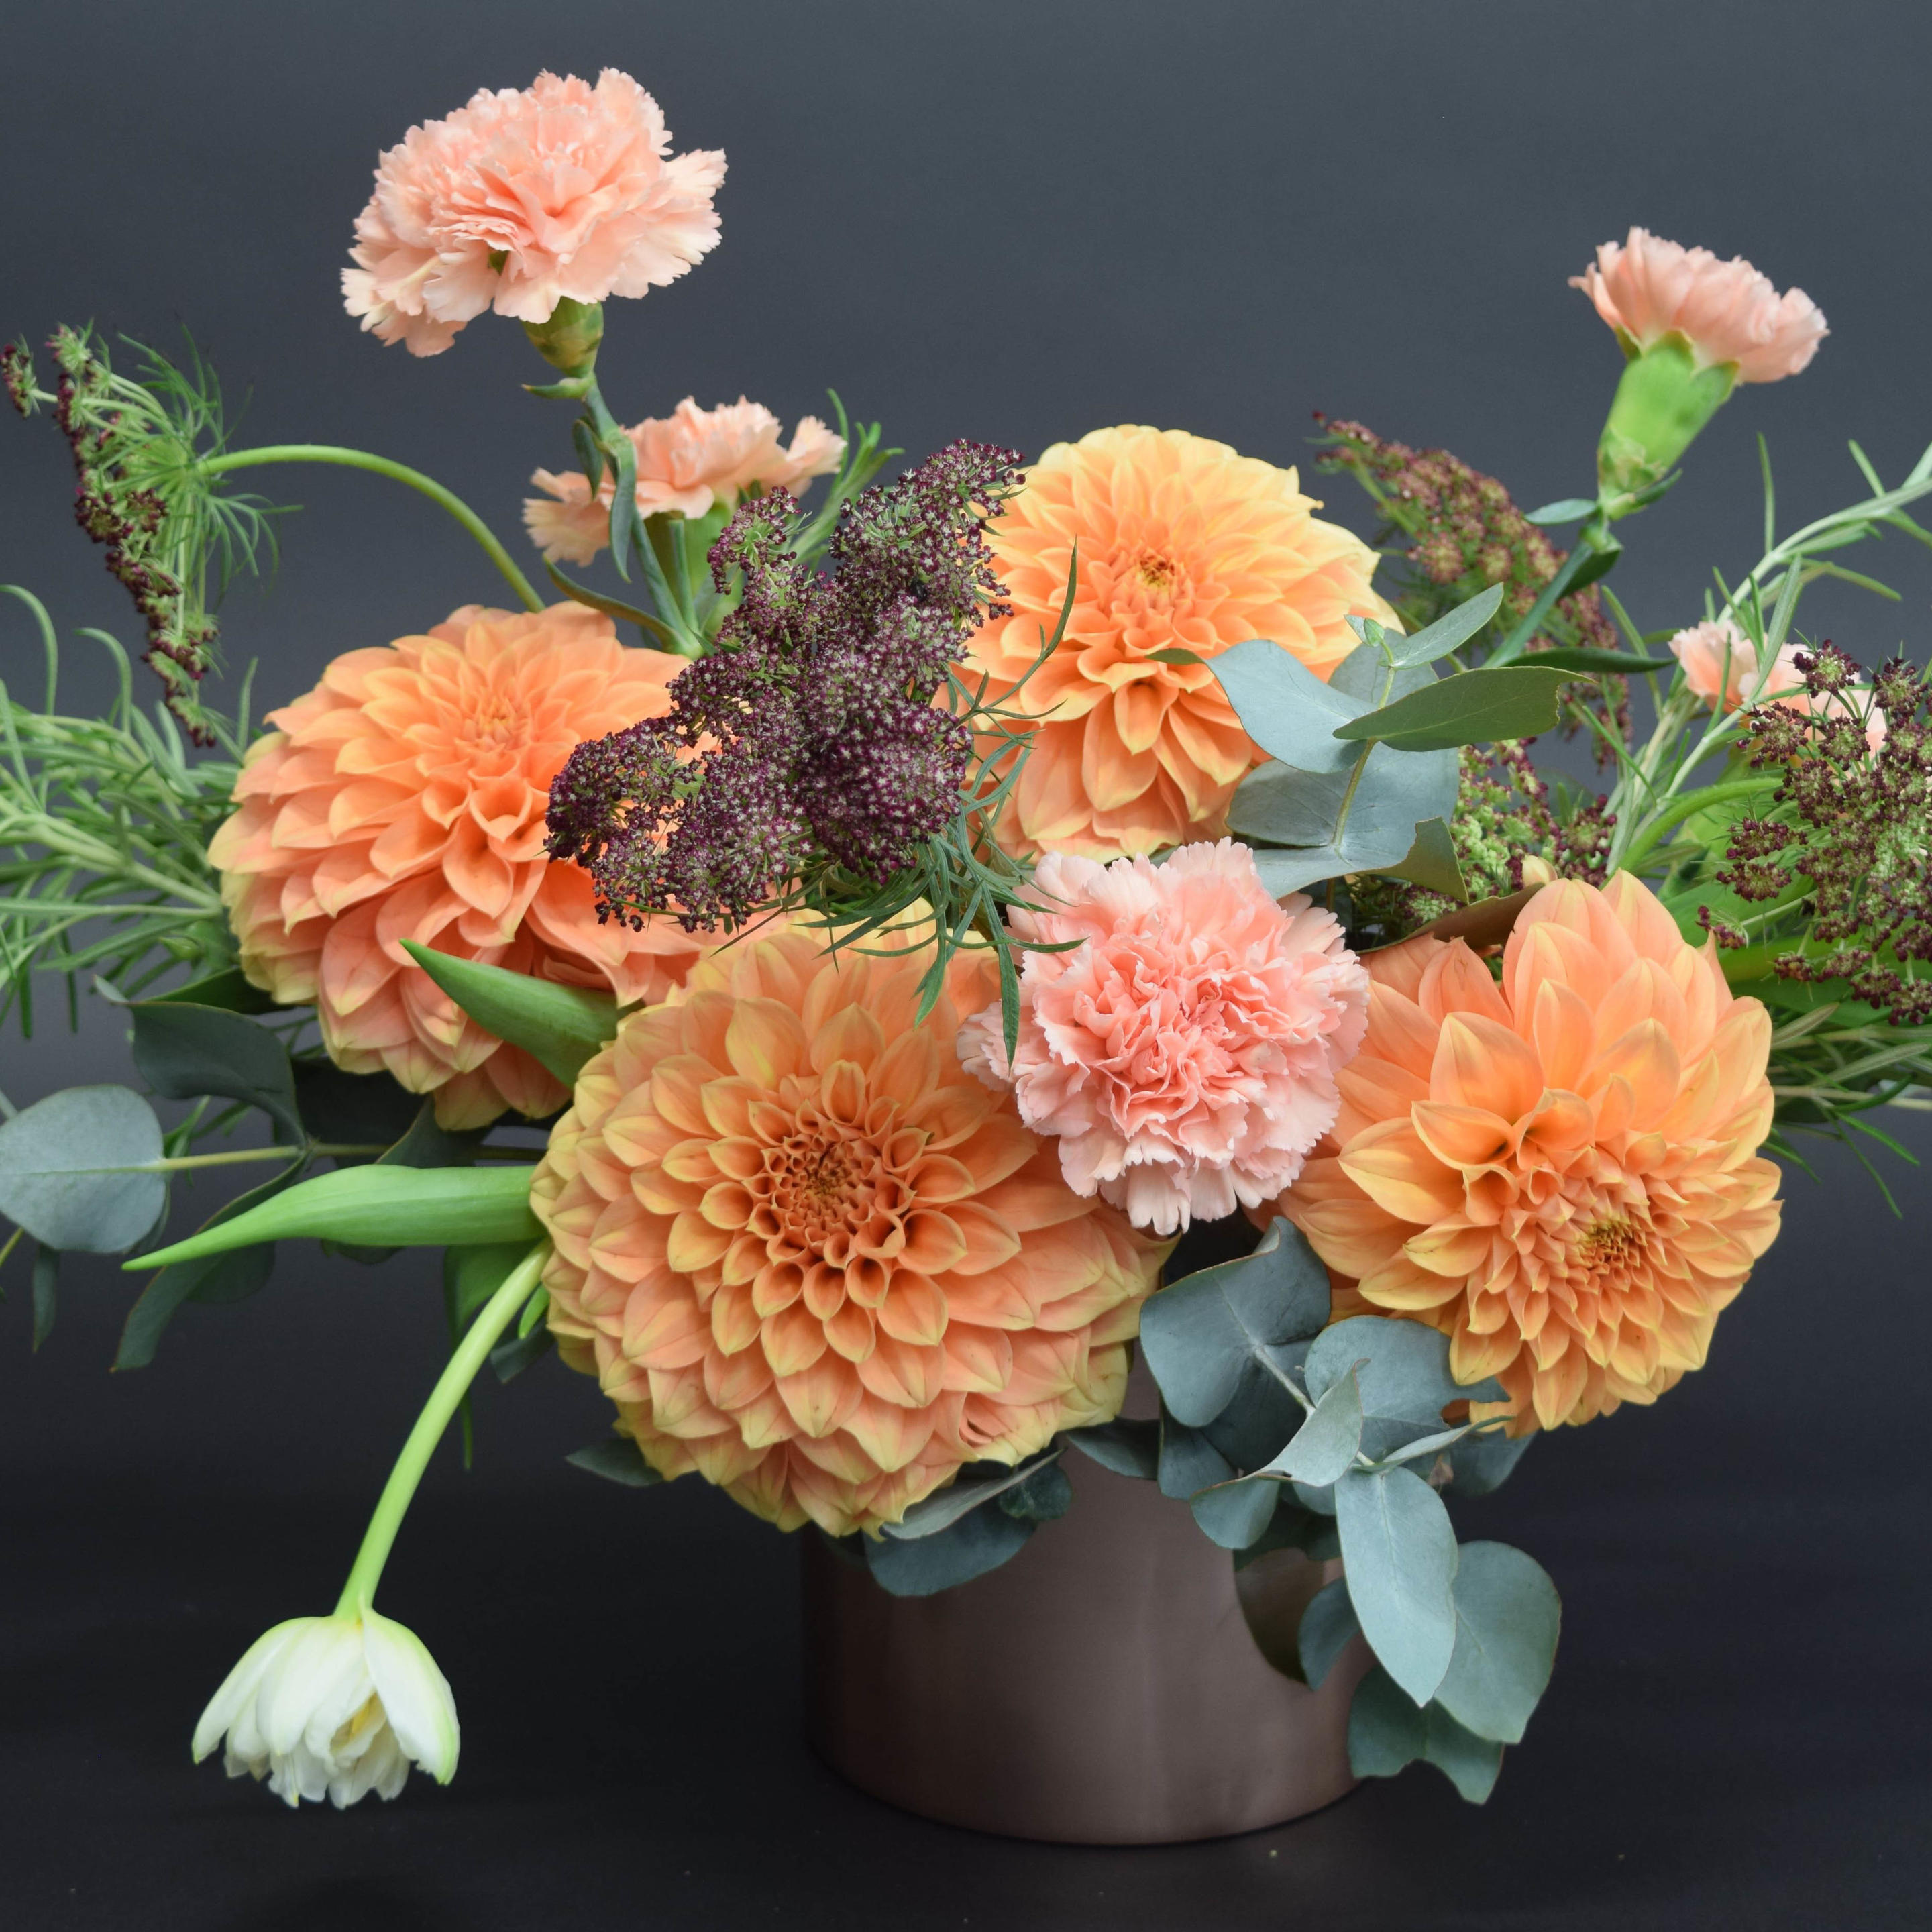 Flower Arrangements Basics: 5 Week Course